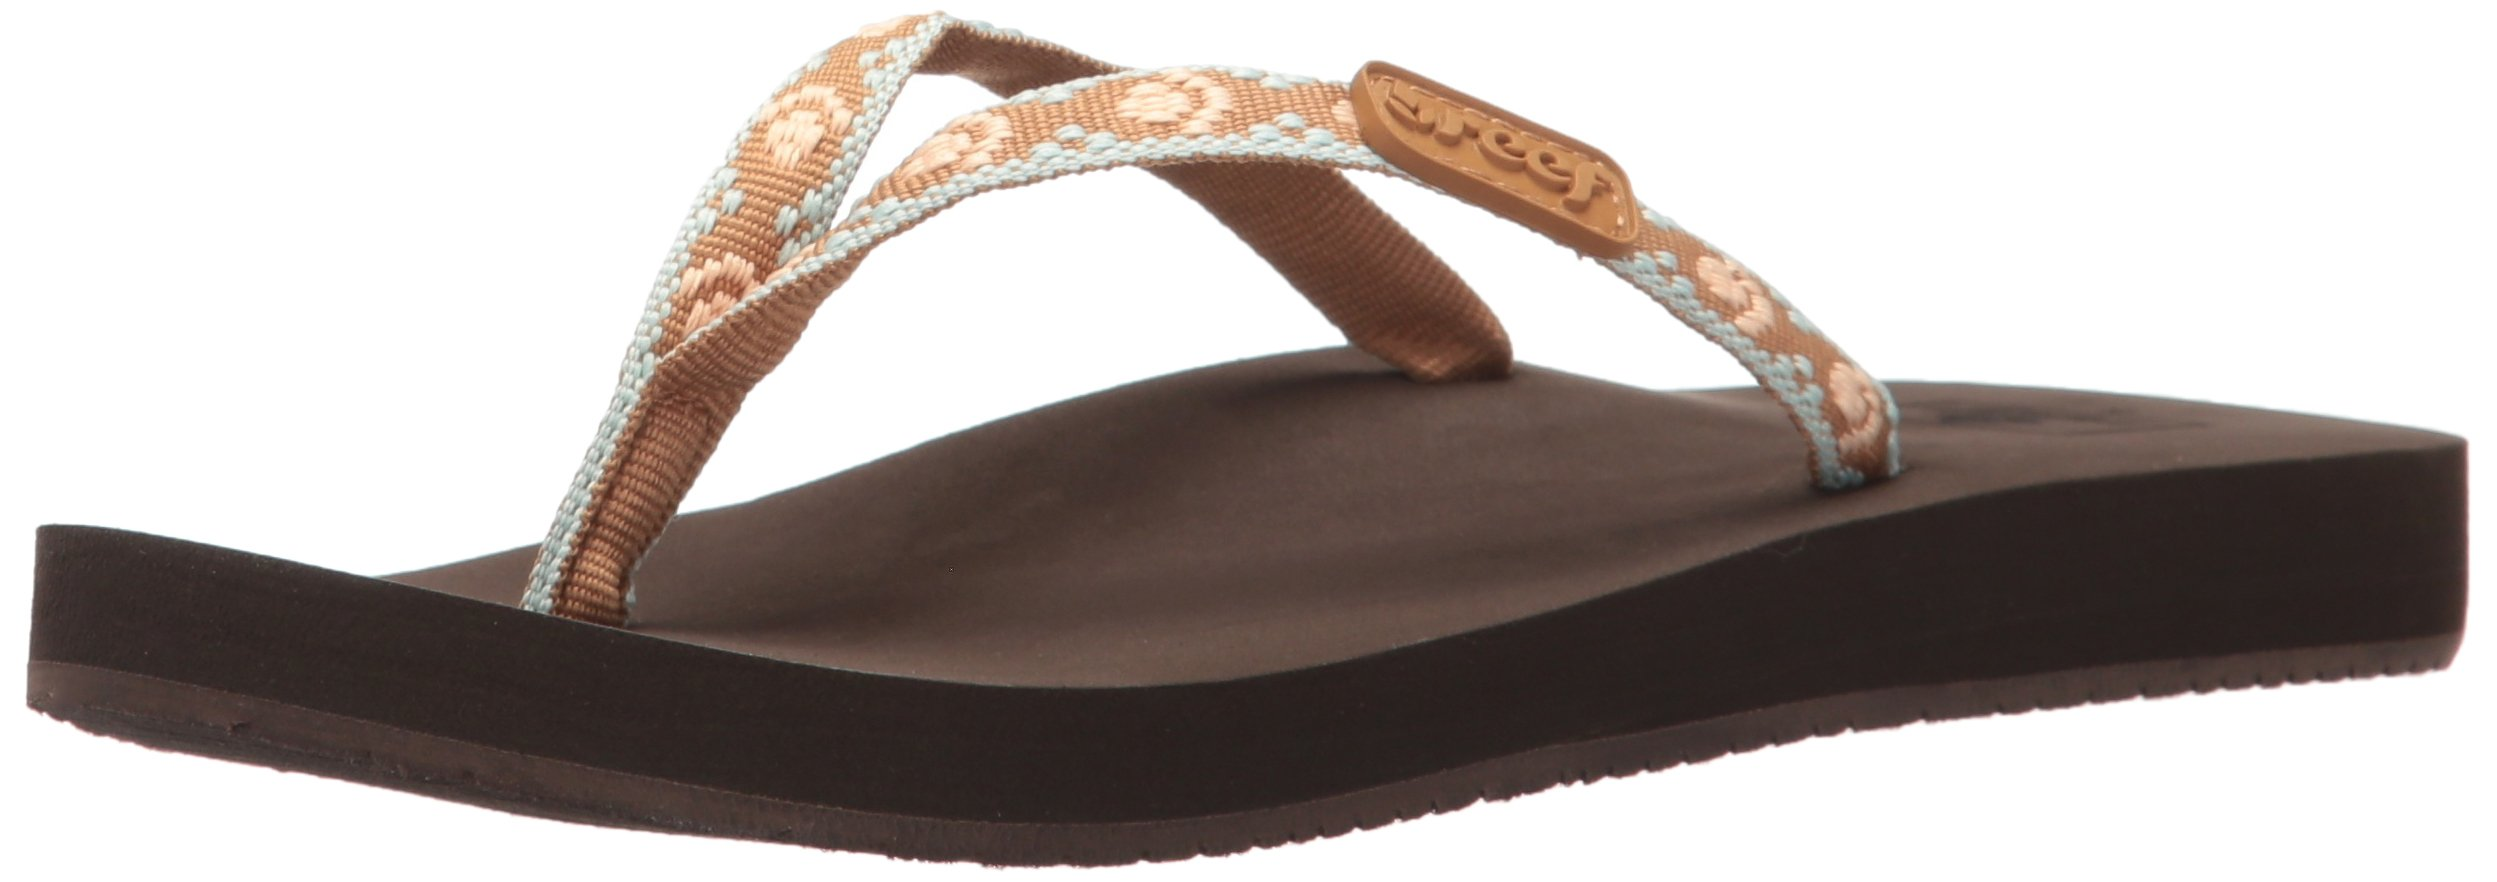 Reef Women's Ginger Flip-Flop, Brown/Peach, 8 M US